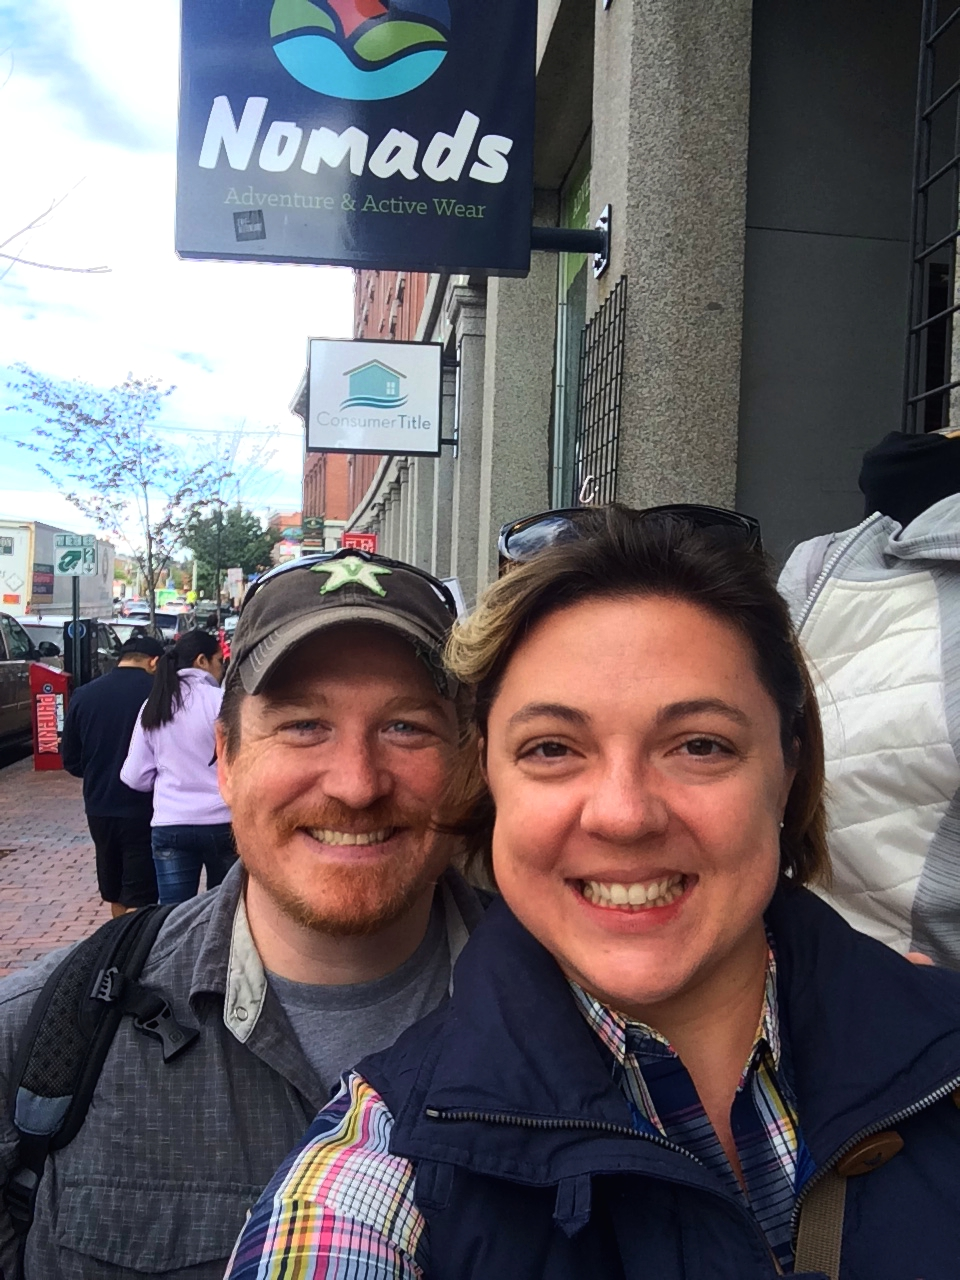 With a name like Nomads, we just had to stop in this store in Portland. It was full of outdoor and travel apparel and gear. We loved browsing the aisles. Great place to stumble upon!